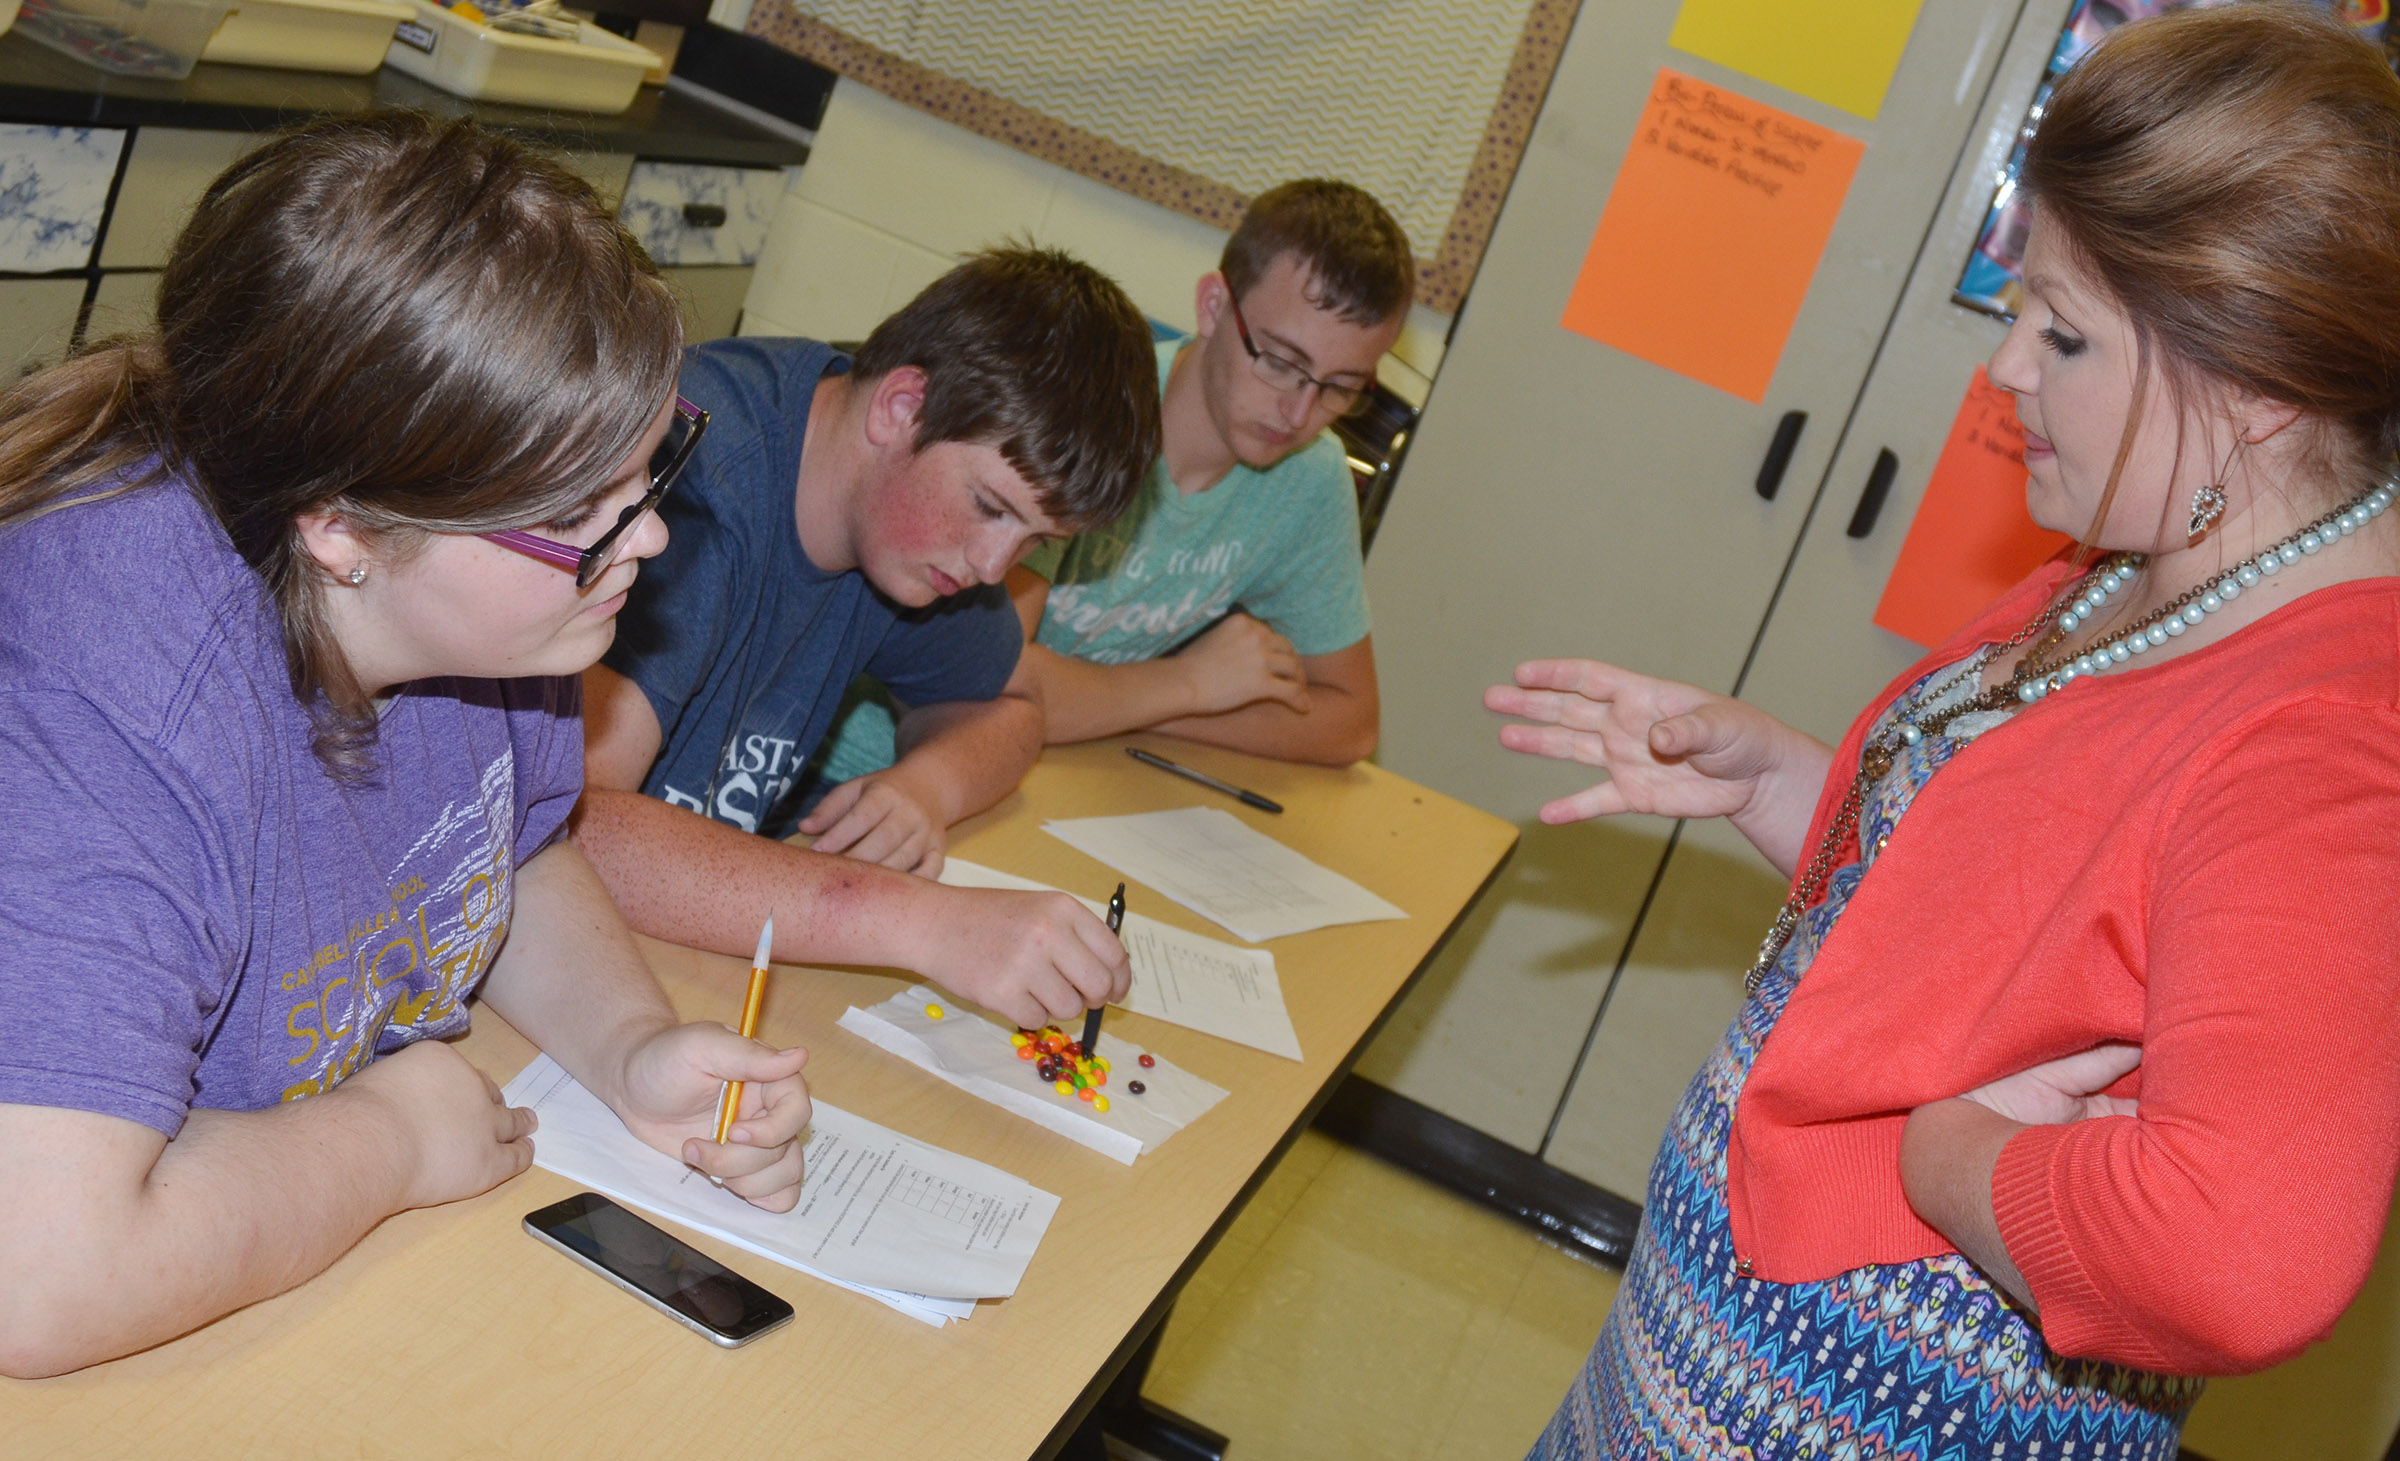 CHS teacher Lauren Bennett helps, from left, sophomore Taylor Brewer and juniors Quentin Skaggs and Josh Mahan as they count and sort their Skittles.